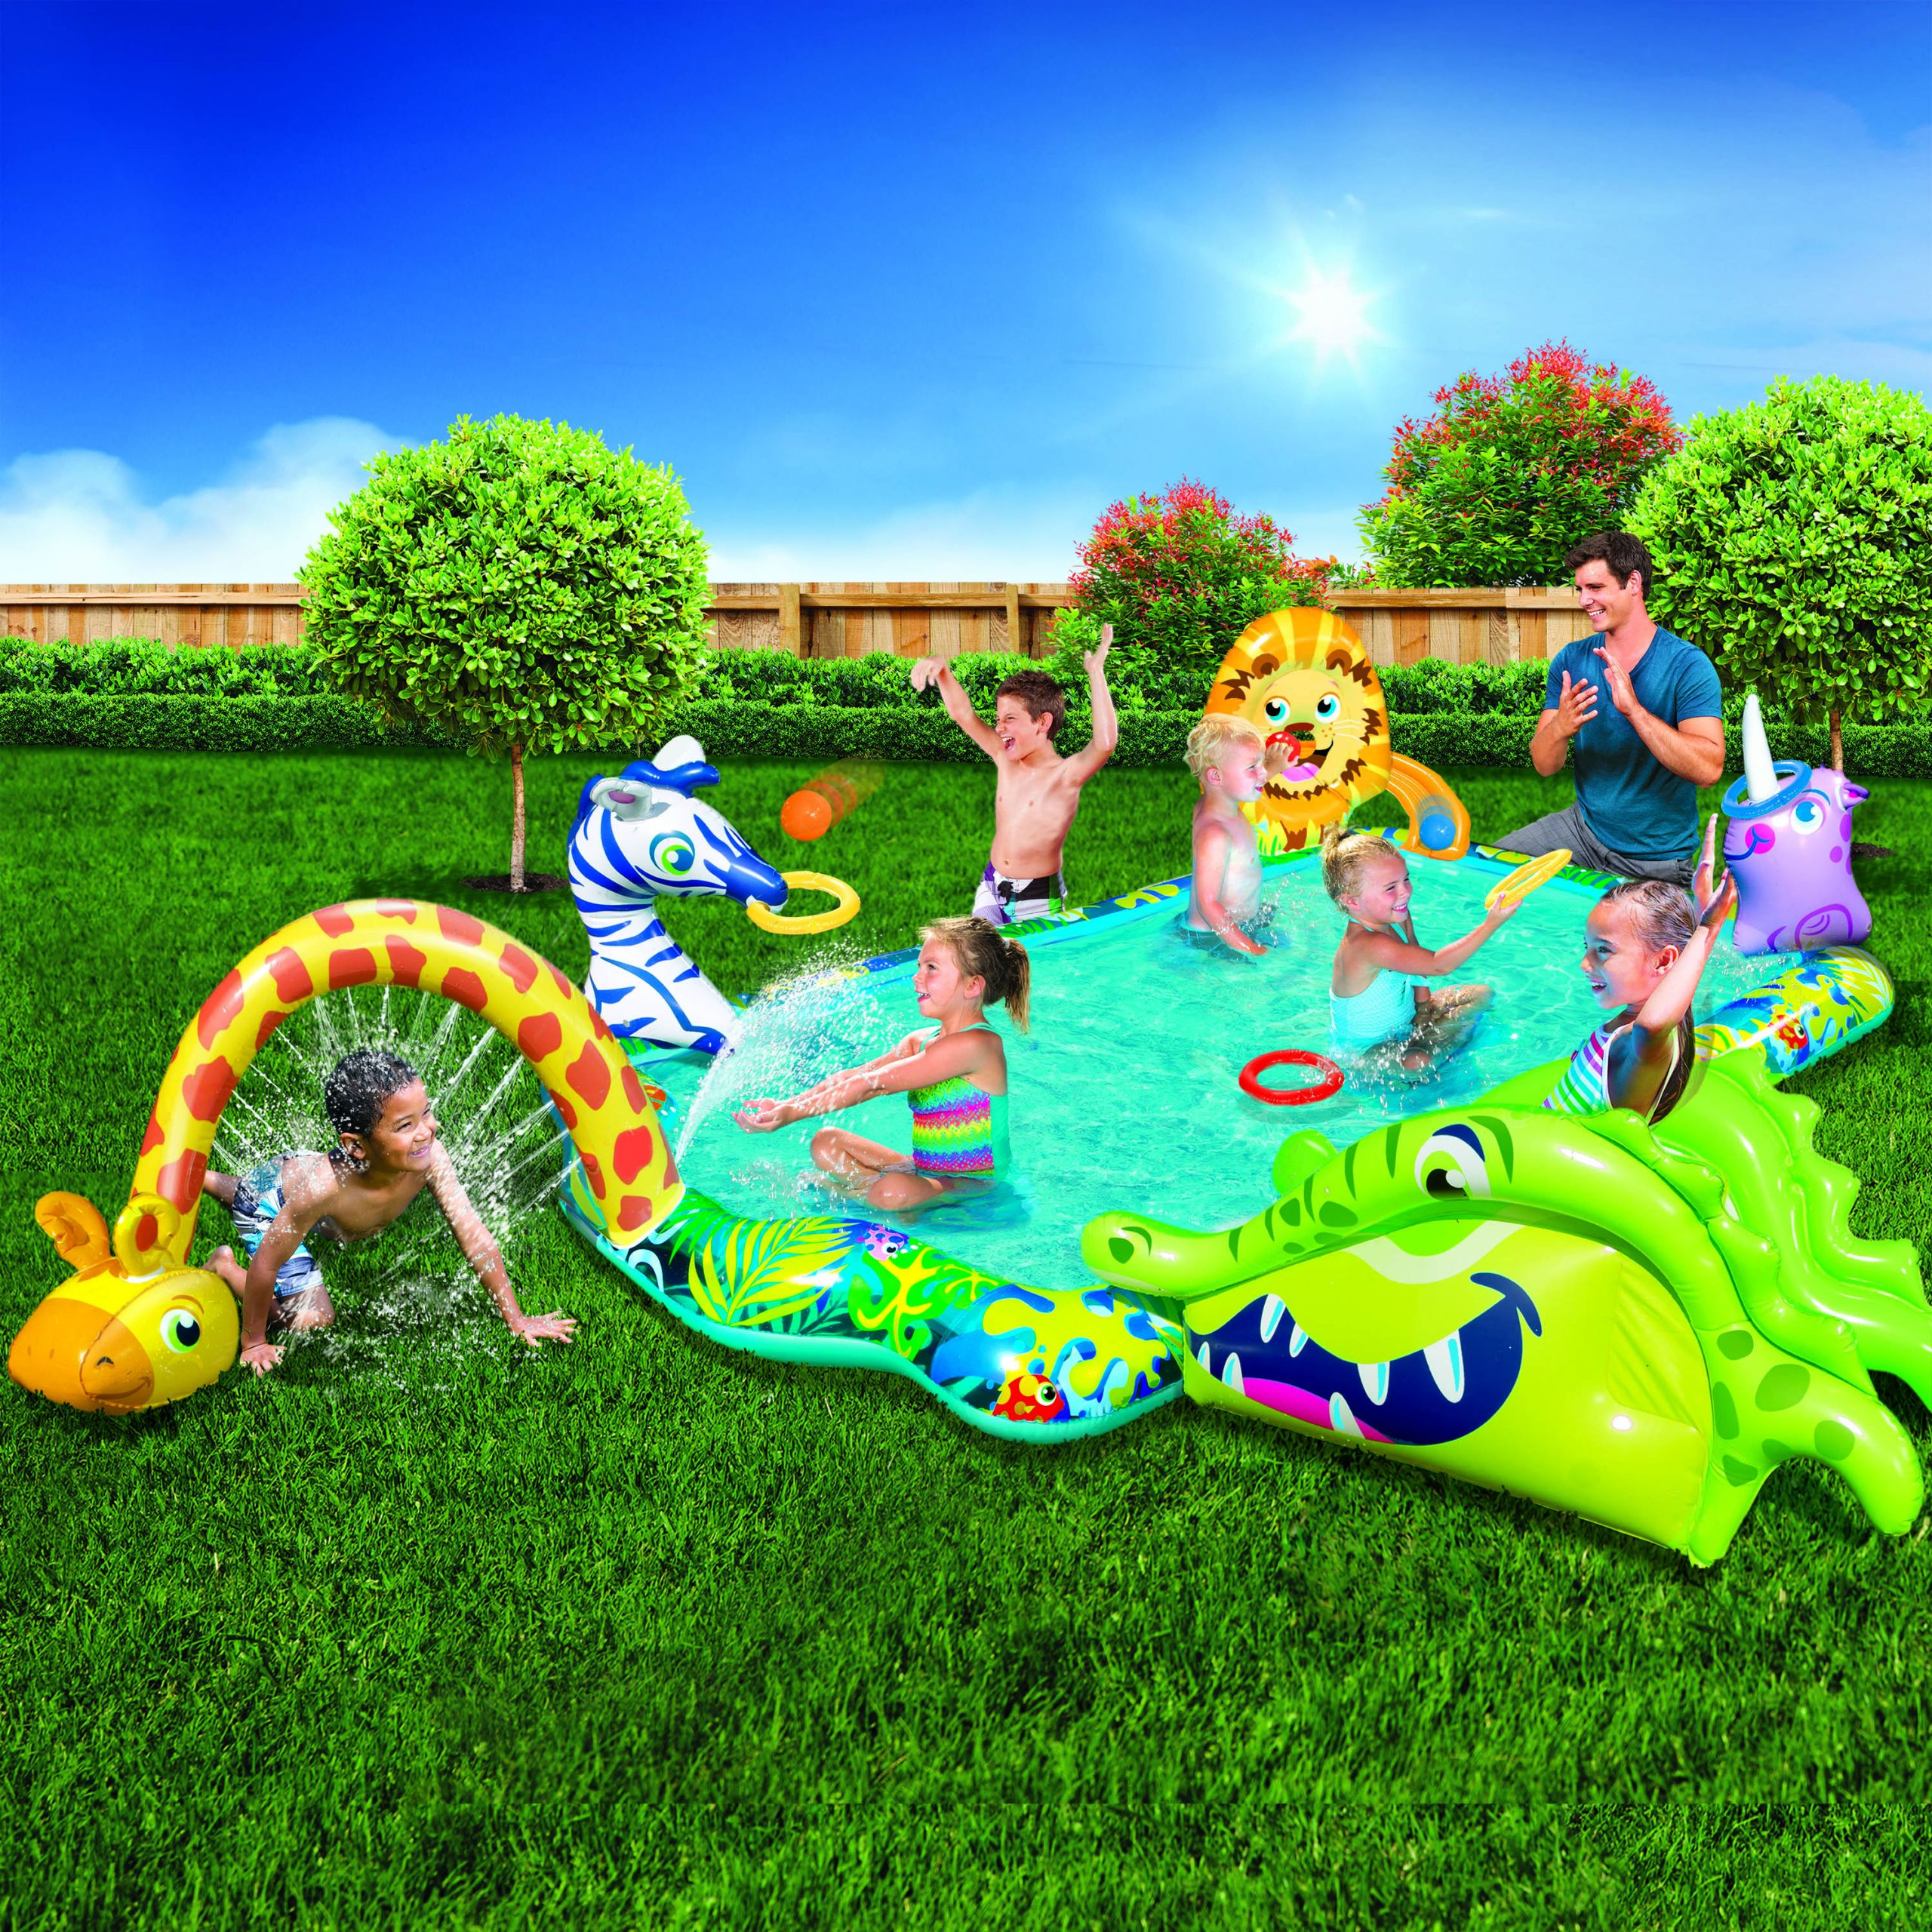 Kids Outdoor Swimming Pool  Swimming Pool For Kids Outdoor Inflatable Kid Pools